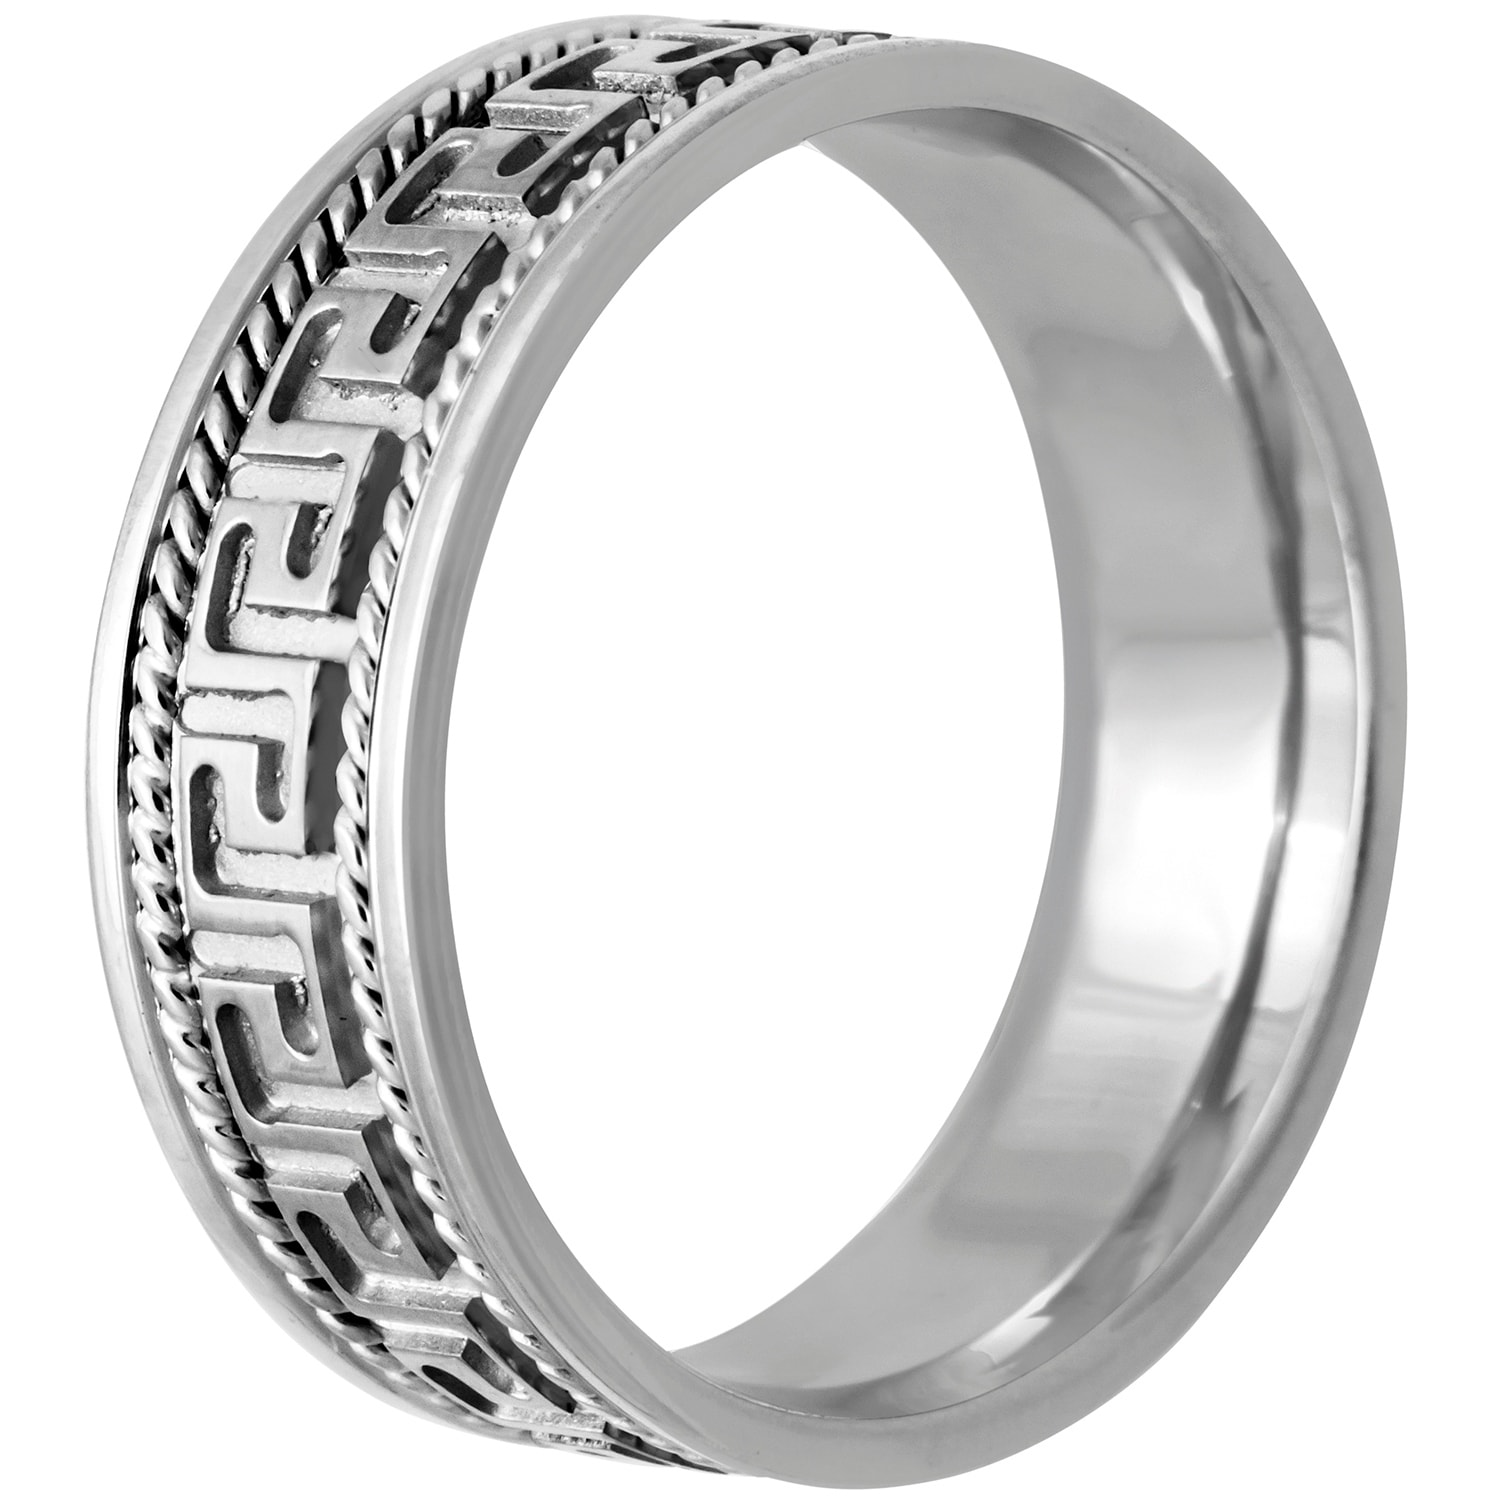 14k White Gold Greek Key Design Comfort Fit Men's Wedding Bands